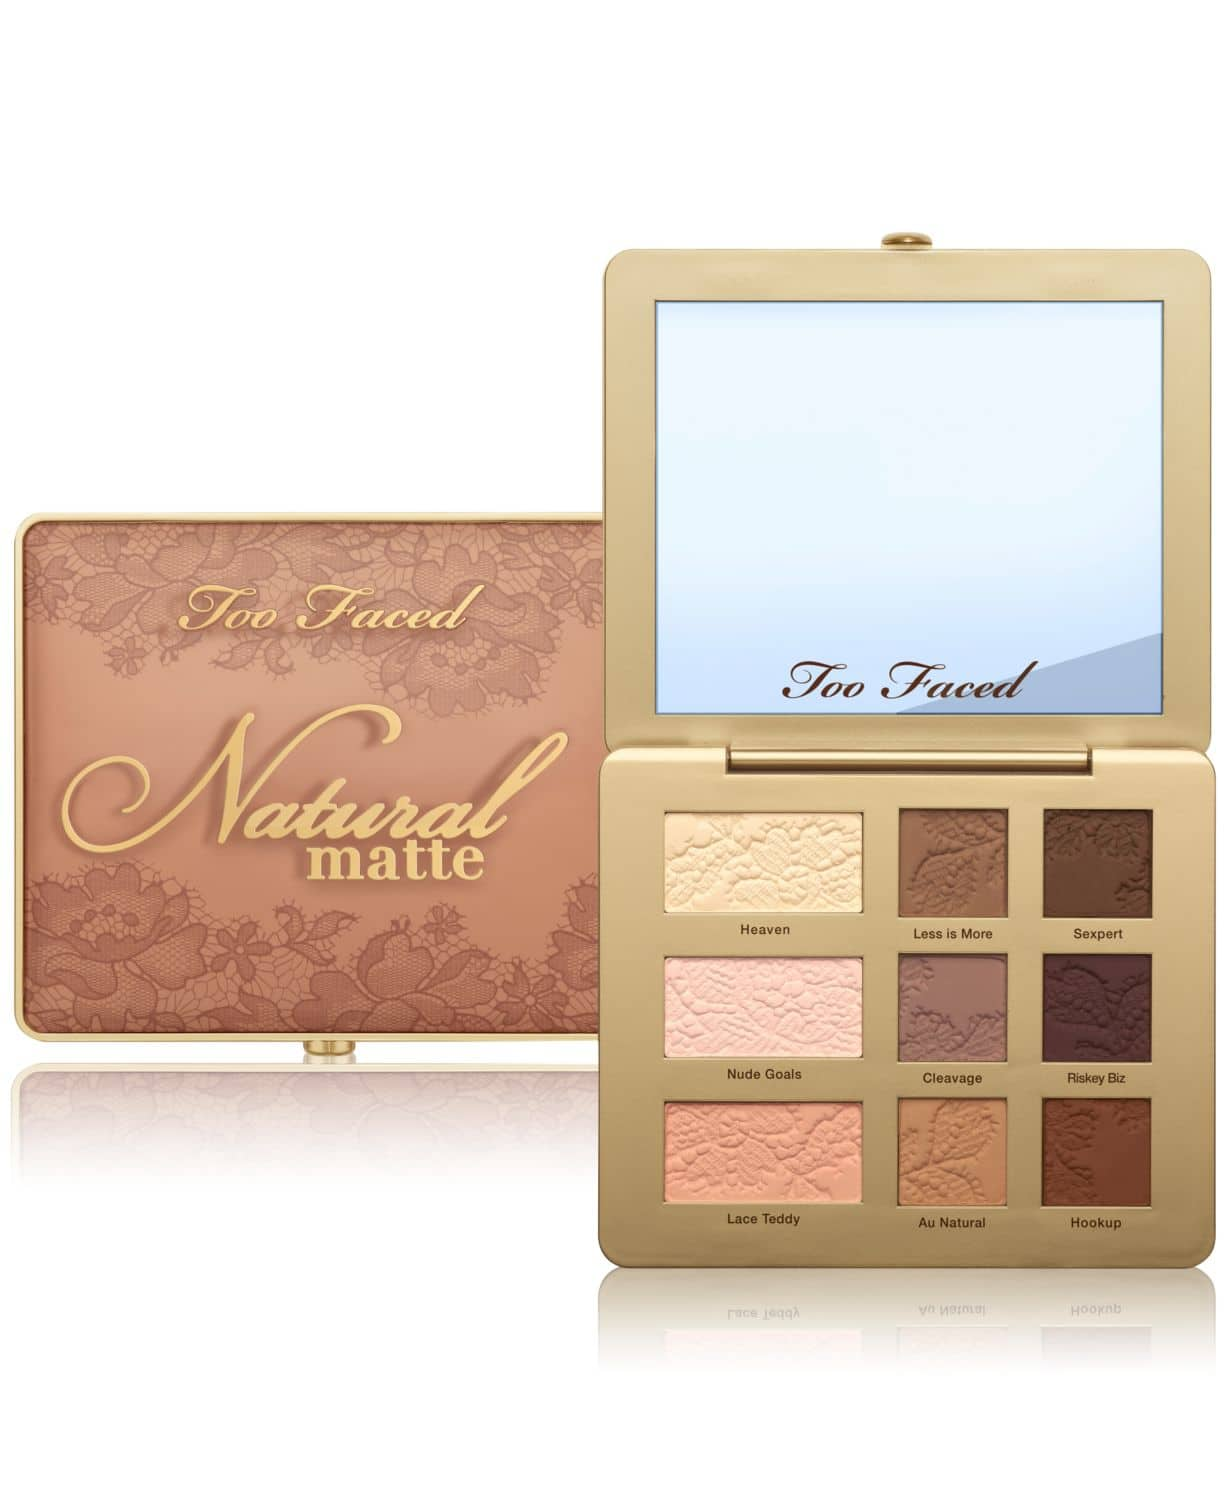 Too Faced Natural Eye Shadow Palette $19 @ Macys.com + FS Today Only 6/16/19